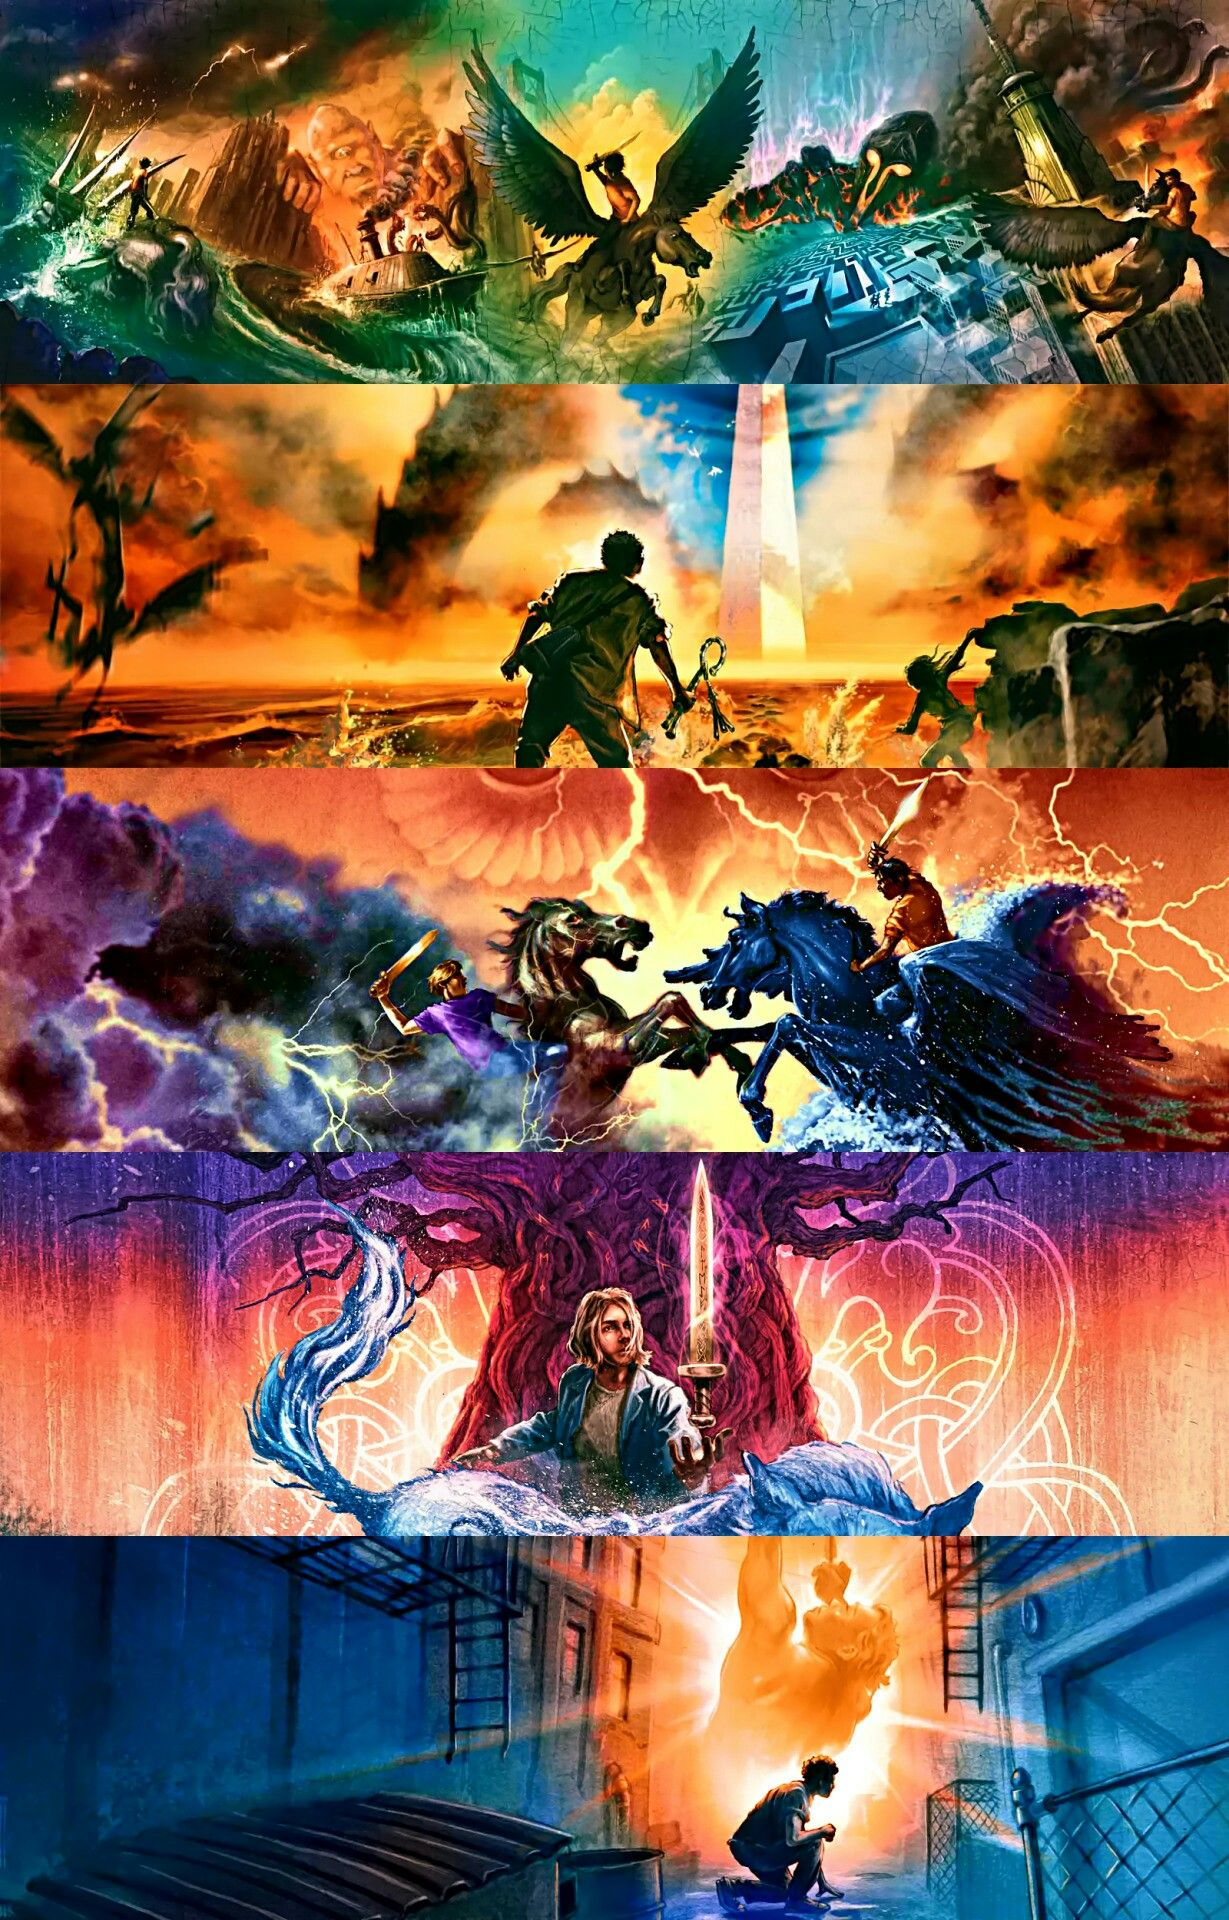 Percy jackson iphone wallpaper tumblr - Rick Riordan Series Percy Jackson And The Olympians The Kane Chronicles Heroes Of